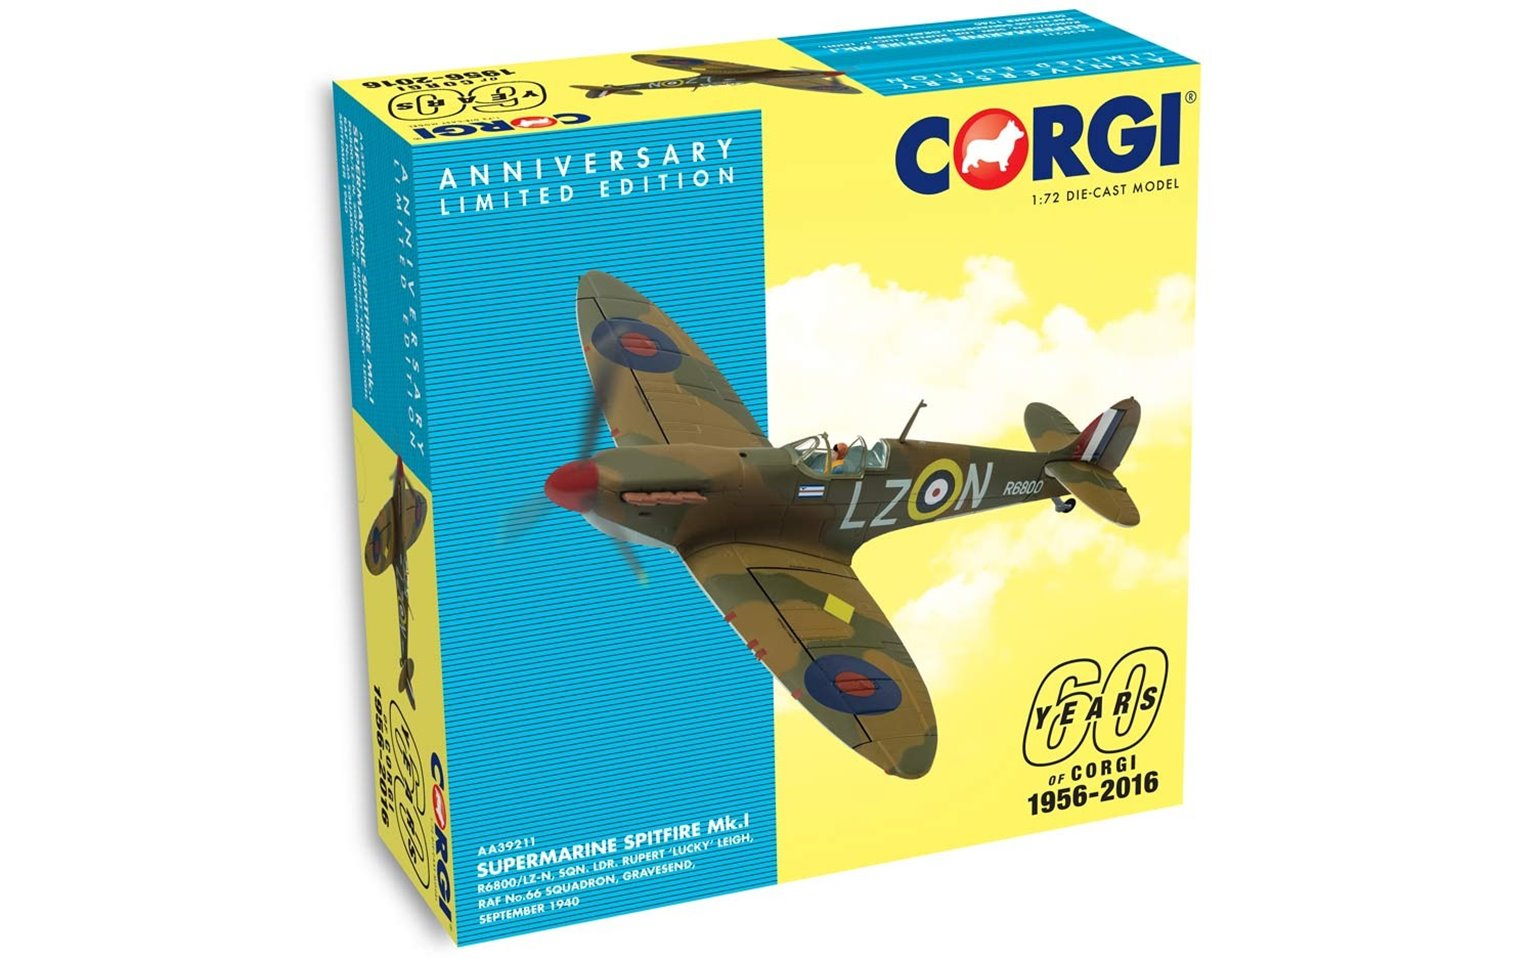 1:72 Supermarine Spitfire Mk.I R6800/LZ-N, Sqn. Ldr. Rupert 'Lucky' Leigh - 60th Anniversary Collection